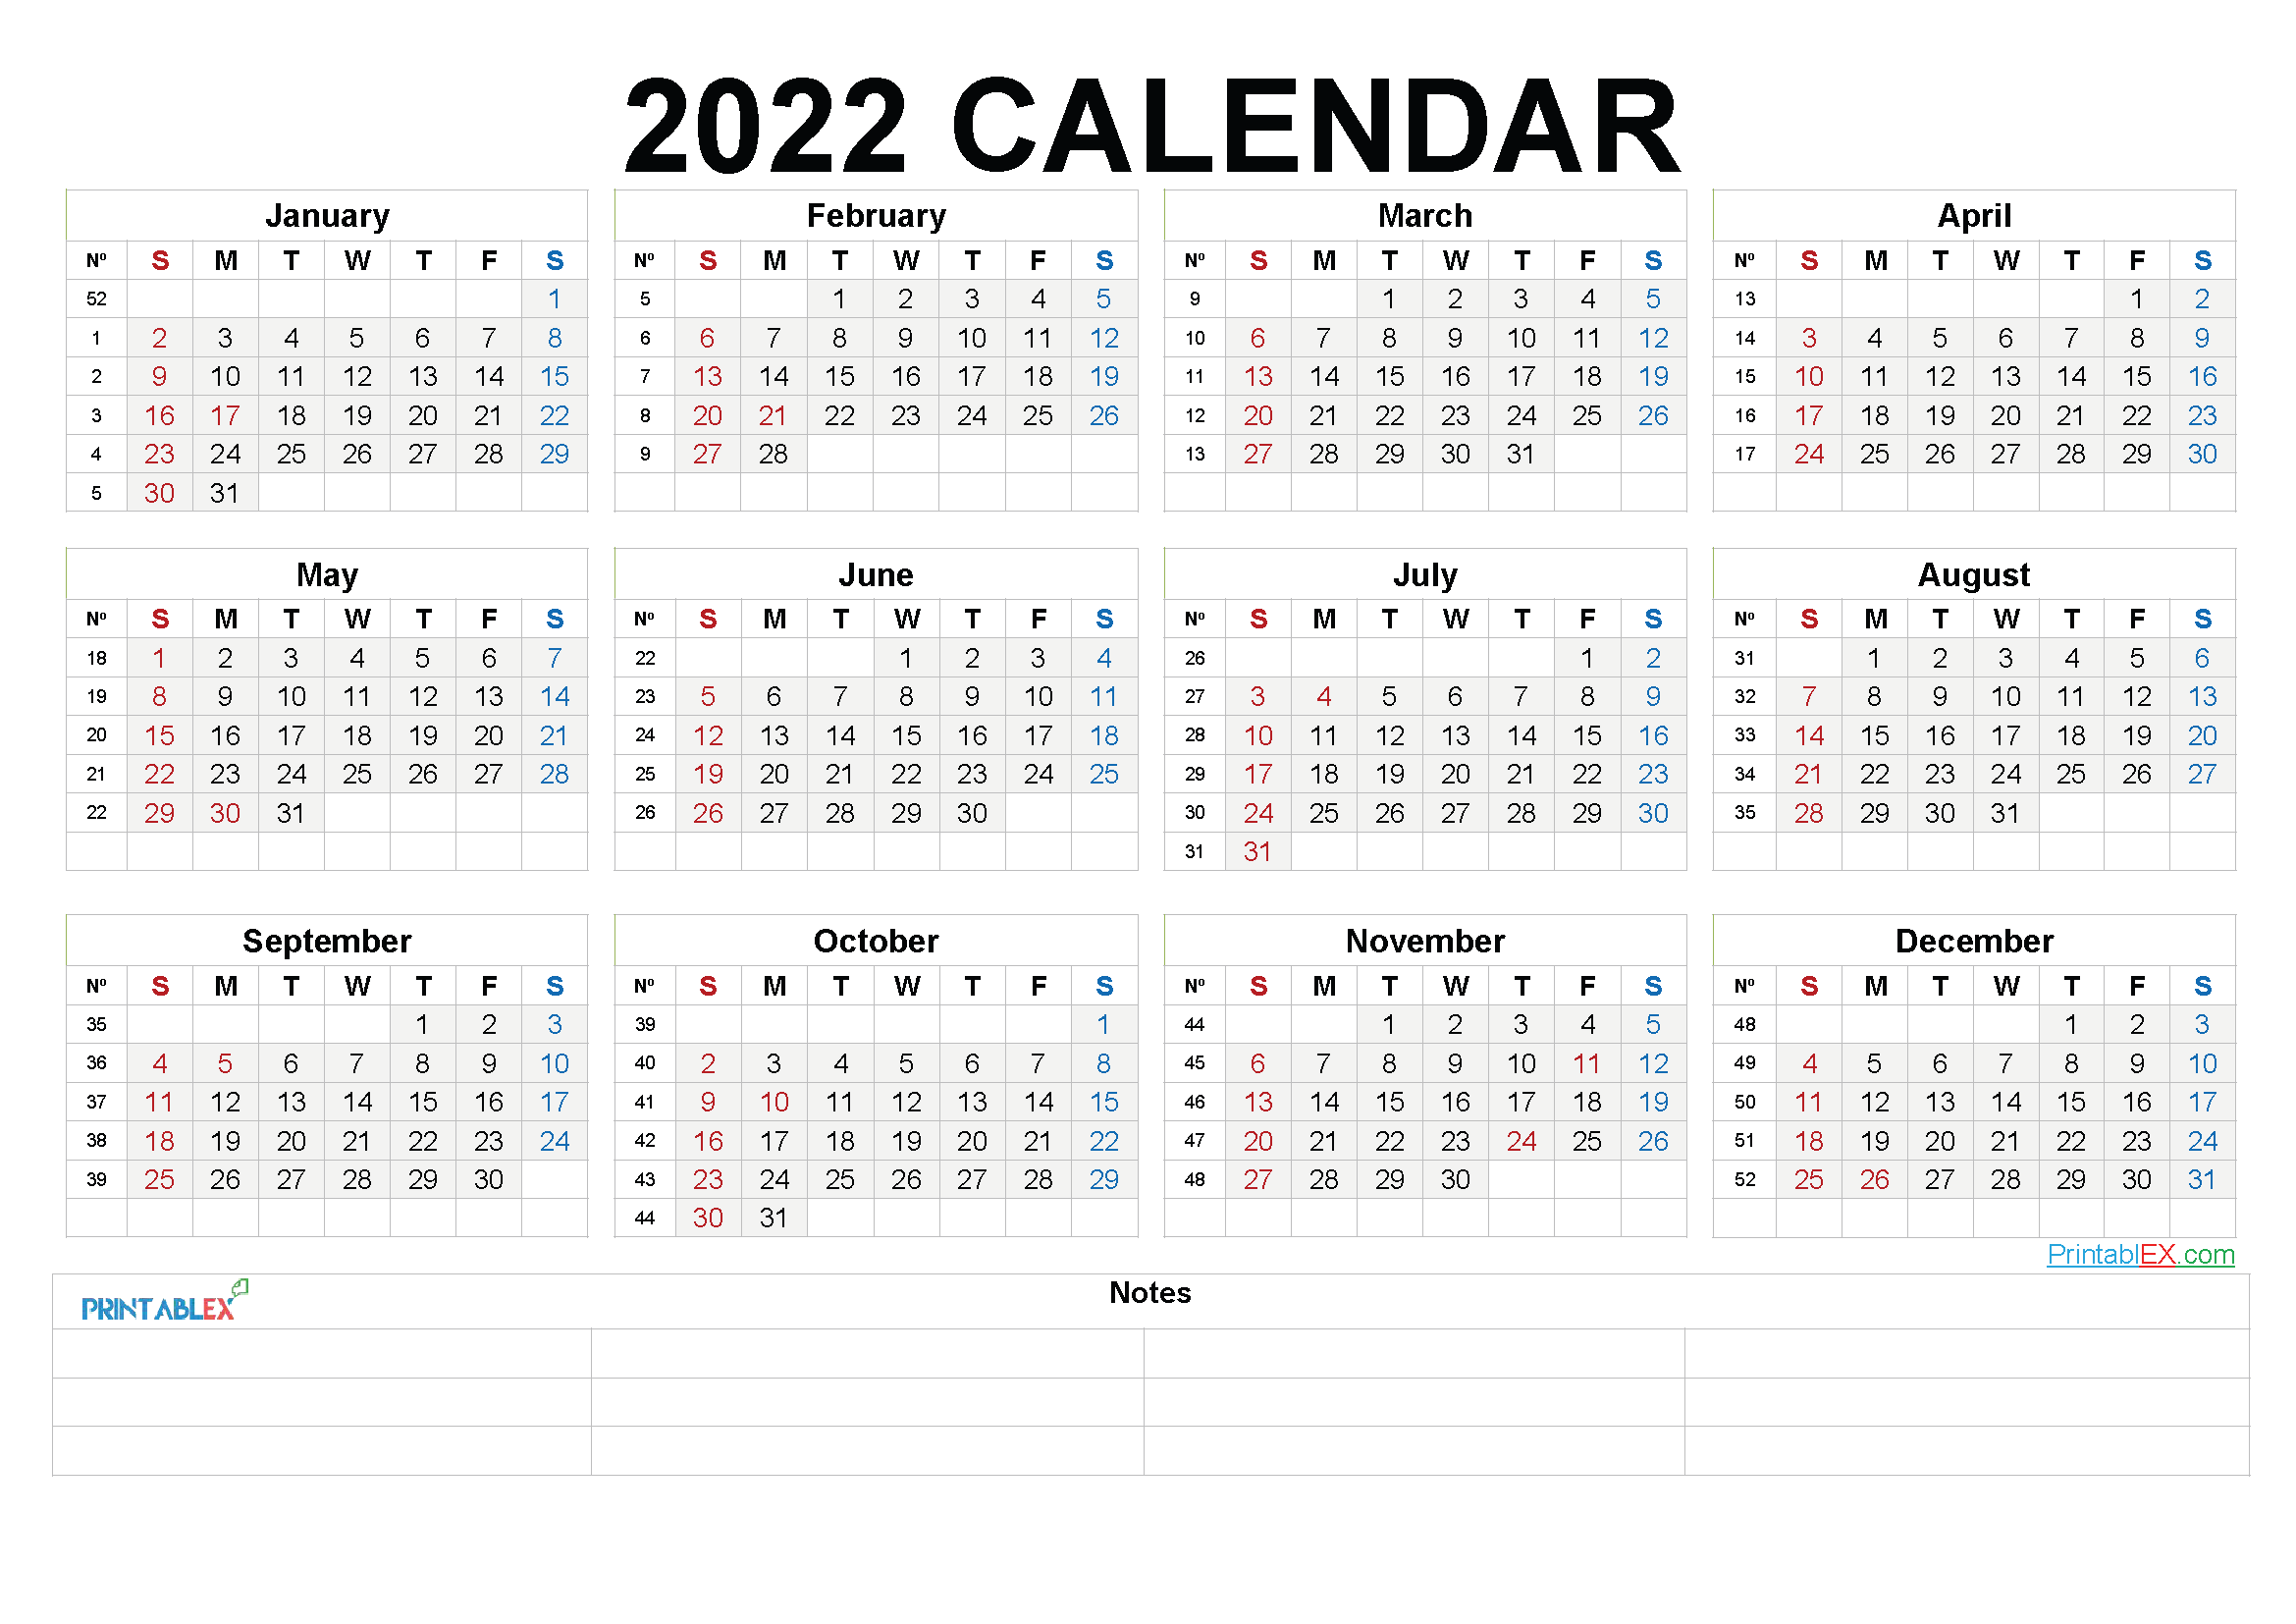 Free Printable 2022 Yearly Calendar with Week Numbers (Font: flake)